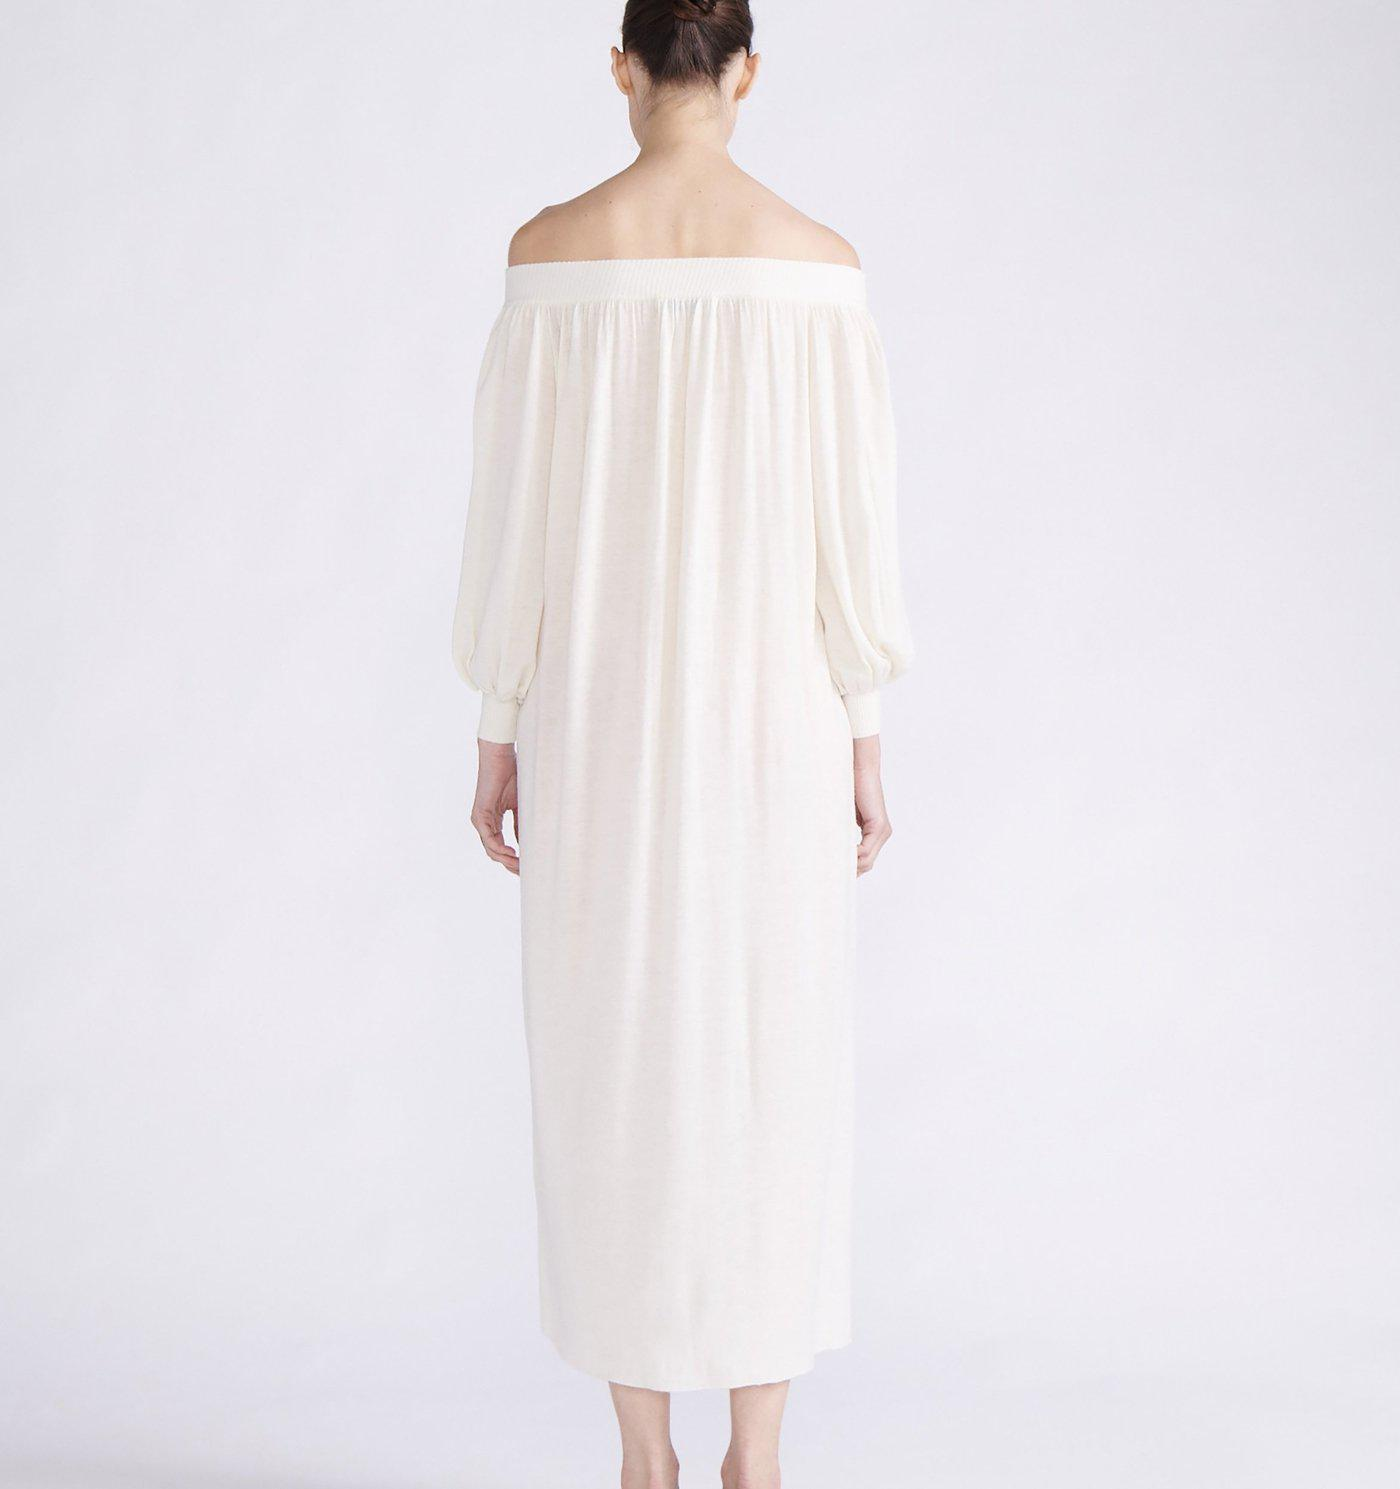 RYAN ROCHE CASHMERE KNIT OFF-THE-SHOULDER MAXI DRESS